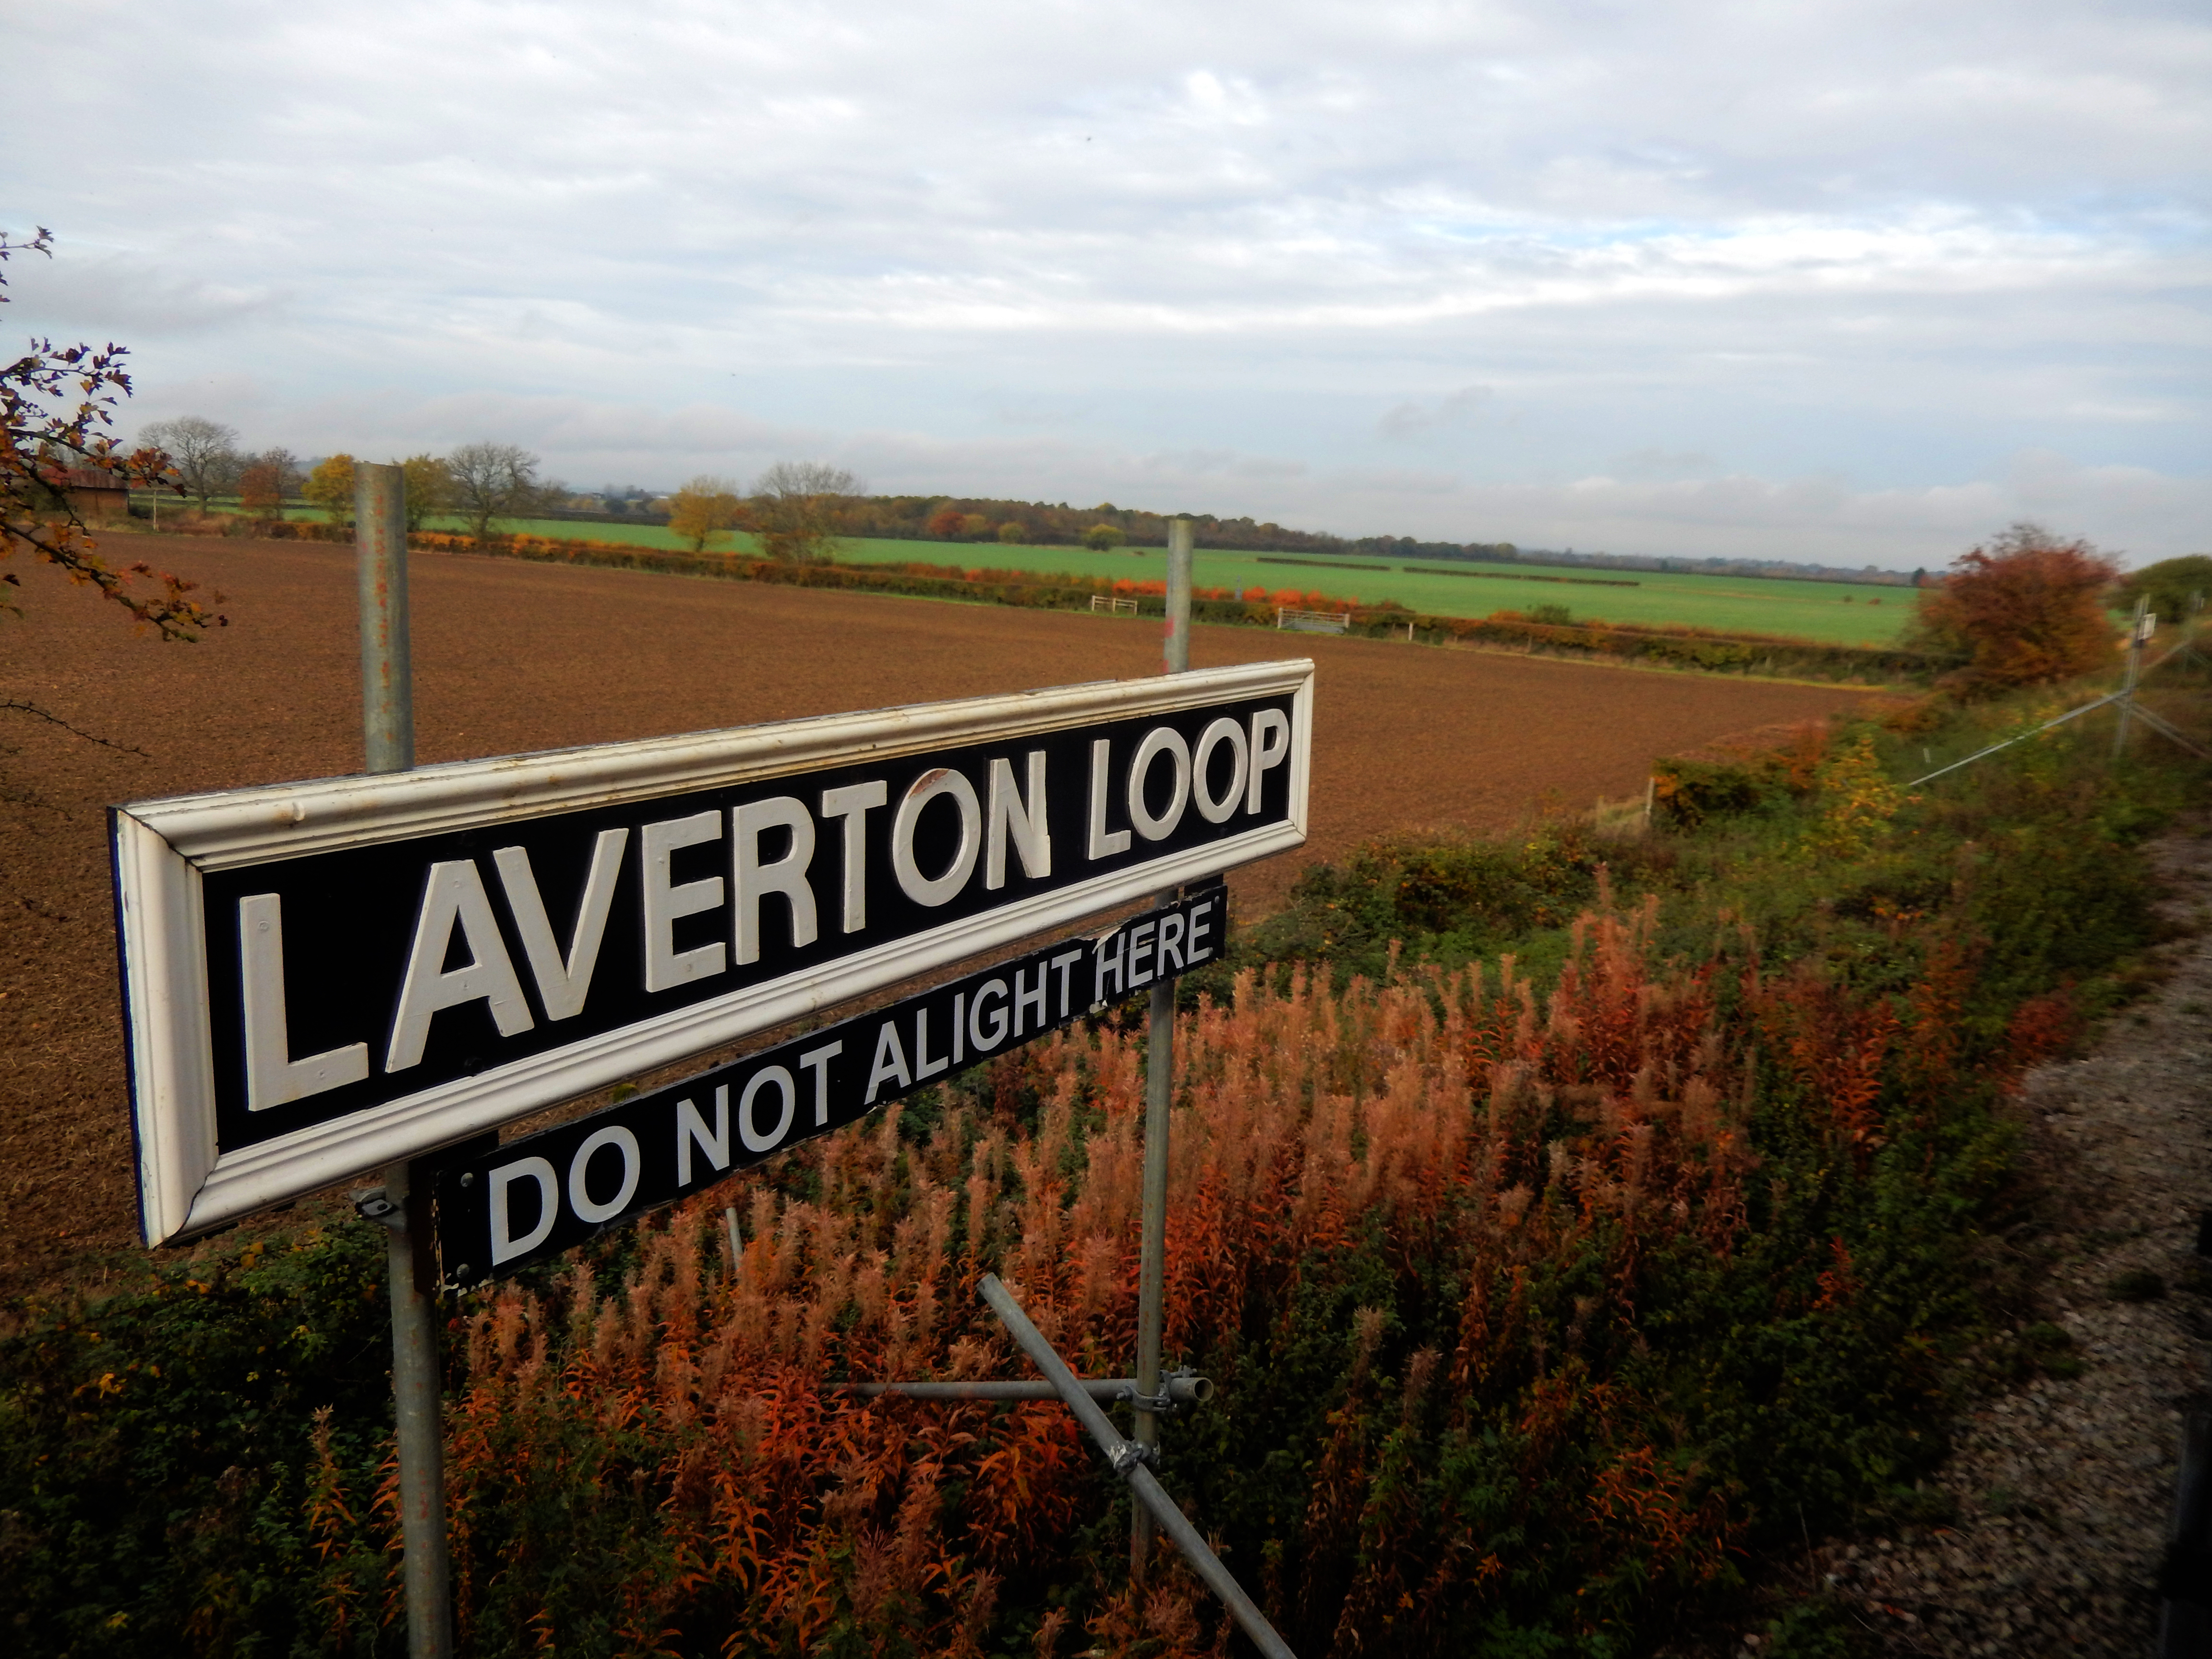 Gloucestershire Warwickshire Steam Railway at Laverton Loop - This Steam Train Stops at Hogwarts...Right!?